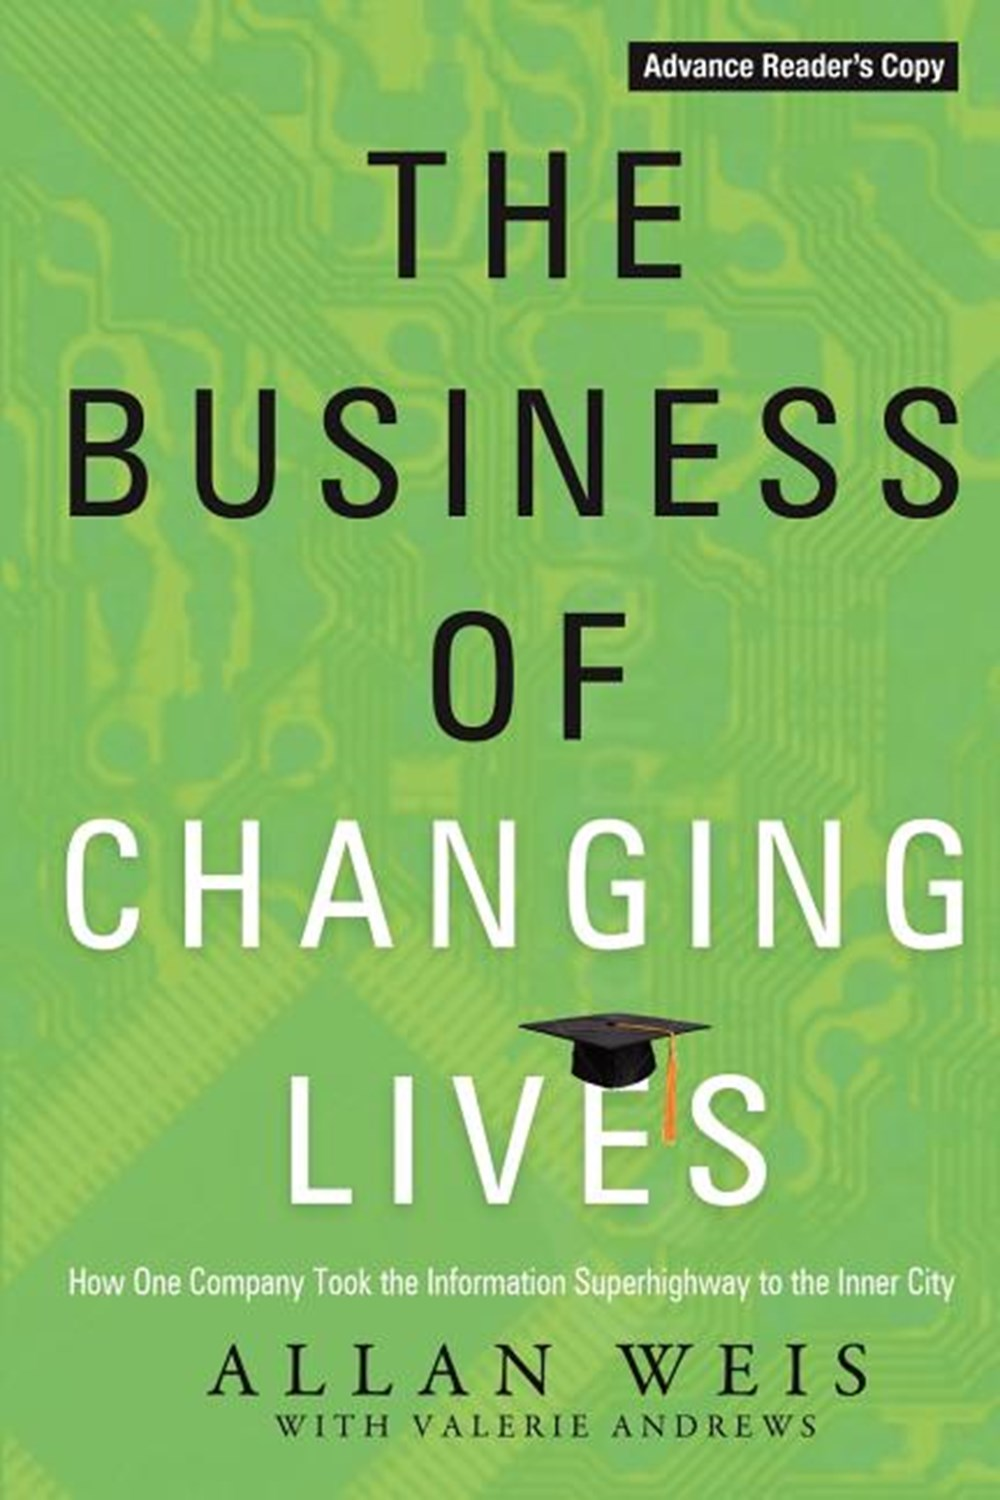 Business of Changing Lives How One Company Took the Information Superhighway to the Inner City